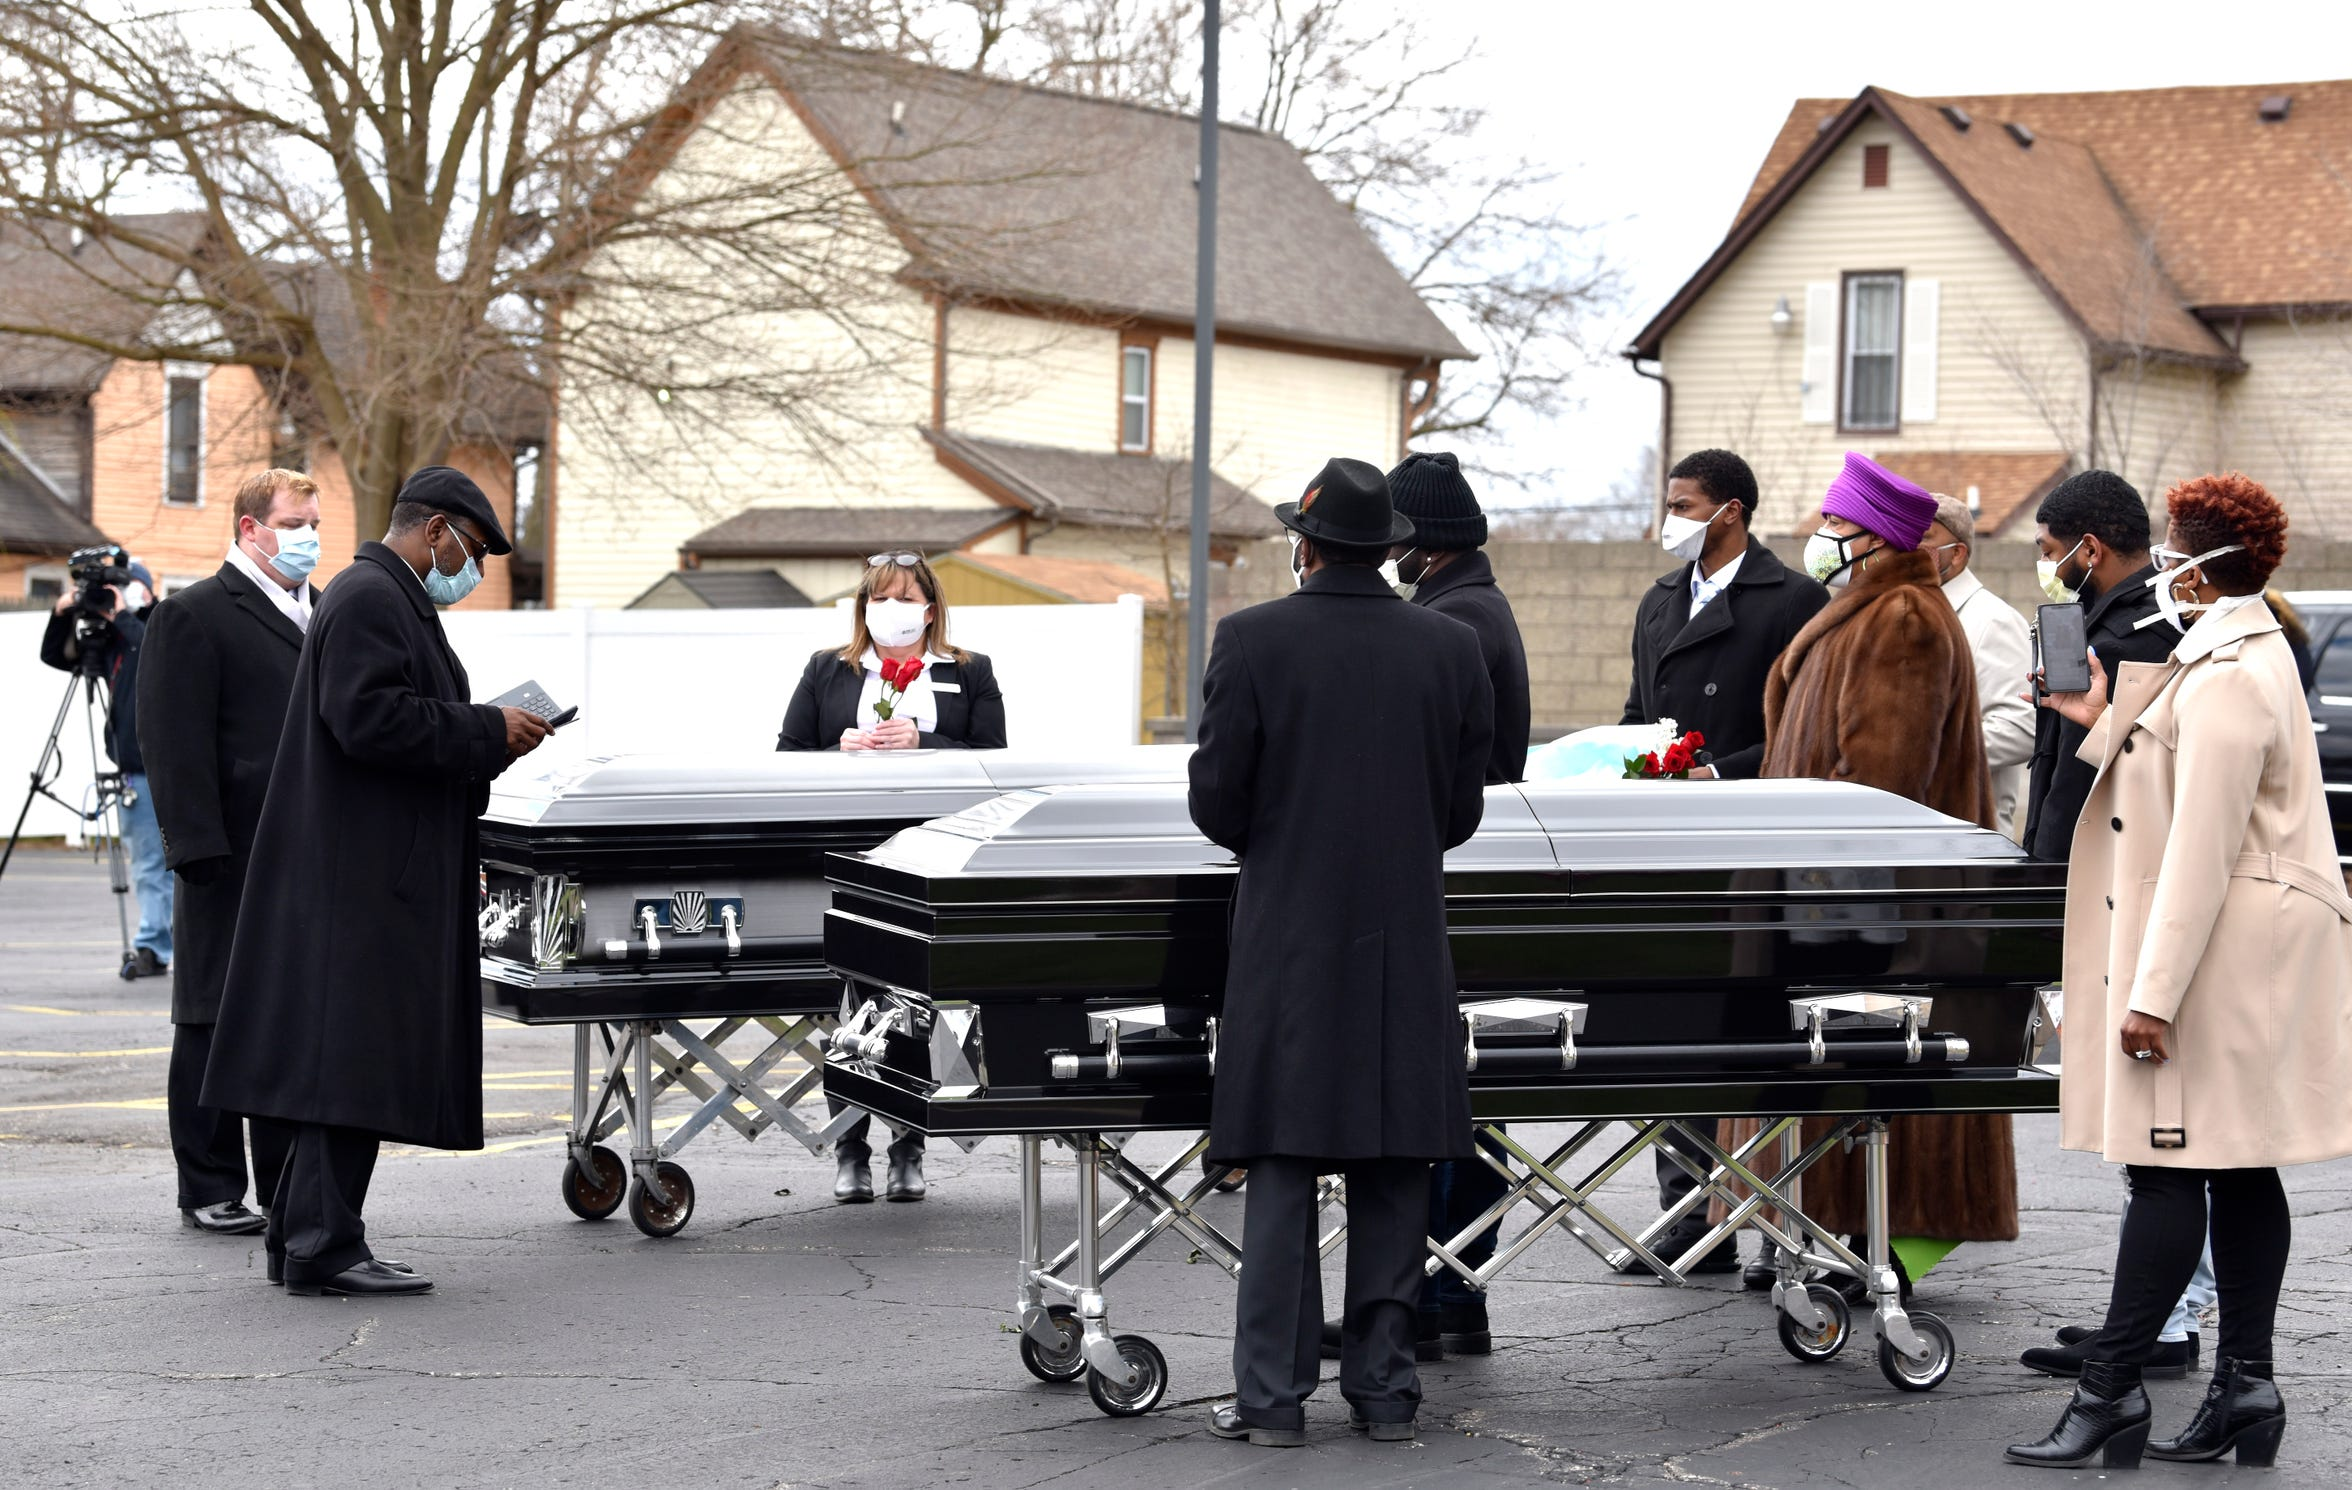 Jackson Memorial Temple Church of God in Christ Pastor Kiemba Knowlin, second from left, conducts the graveside service in the funeral home parking lot instead of the cemetery, due to COVID-19.